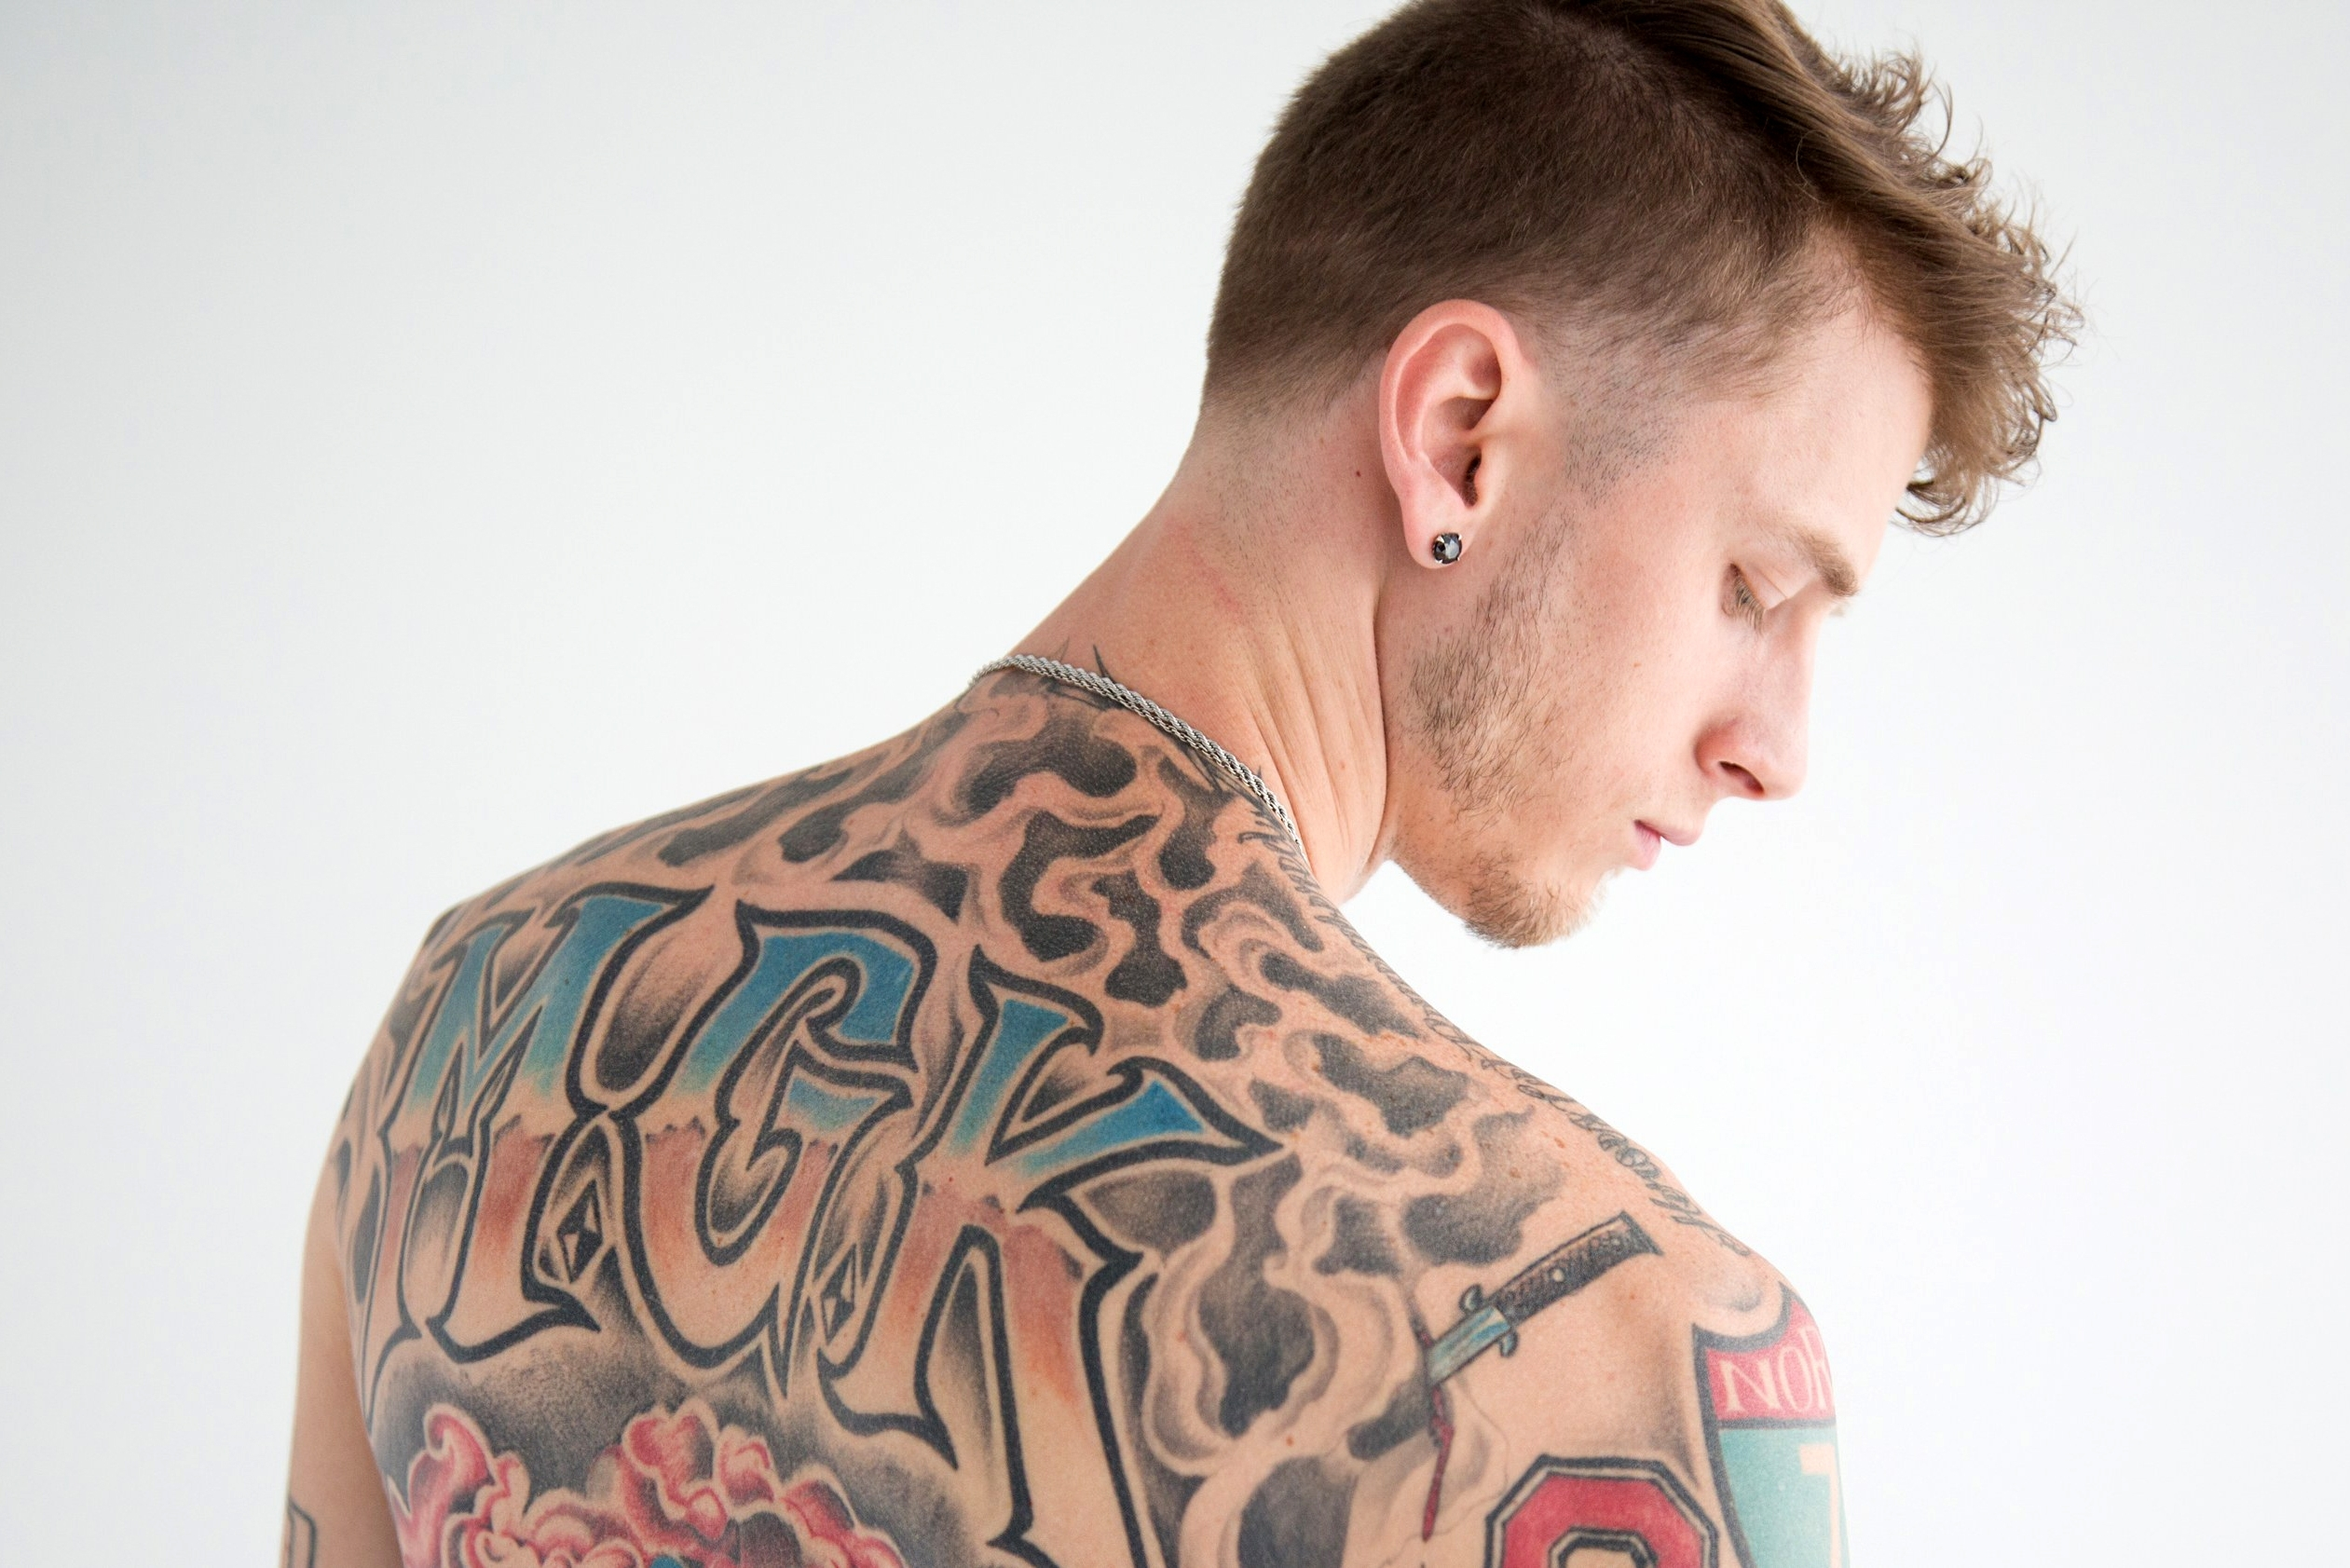 machine gun kelly is not quite 'at his best' and more in singles